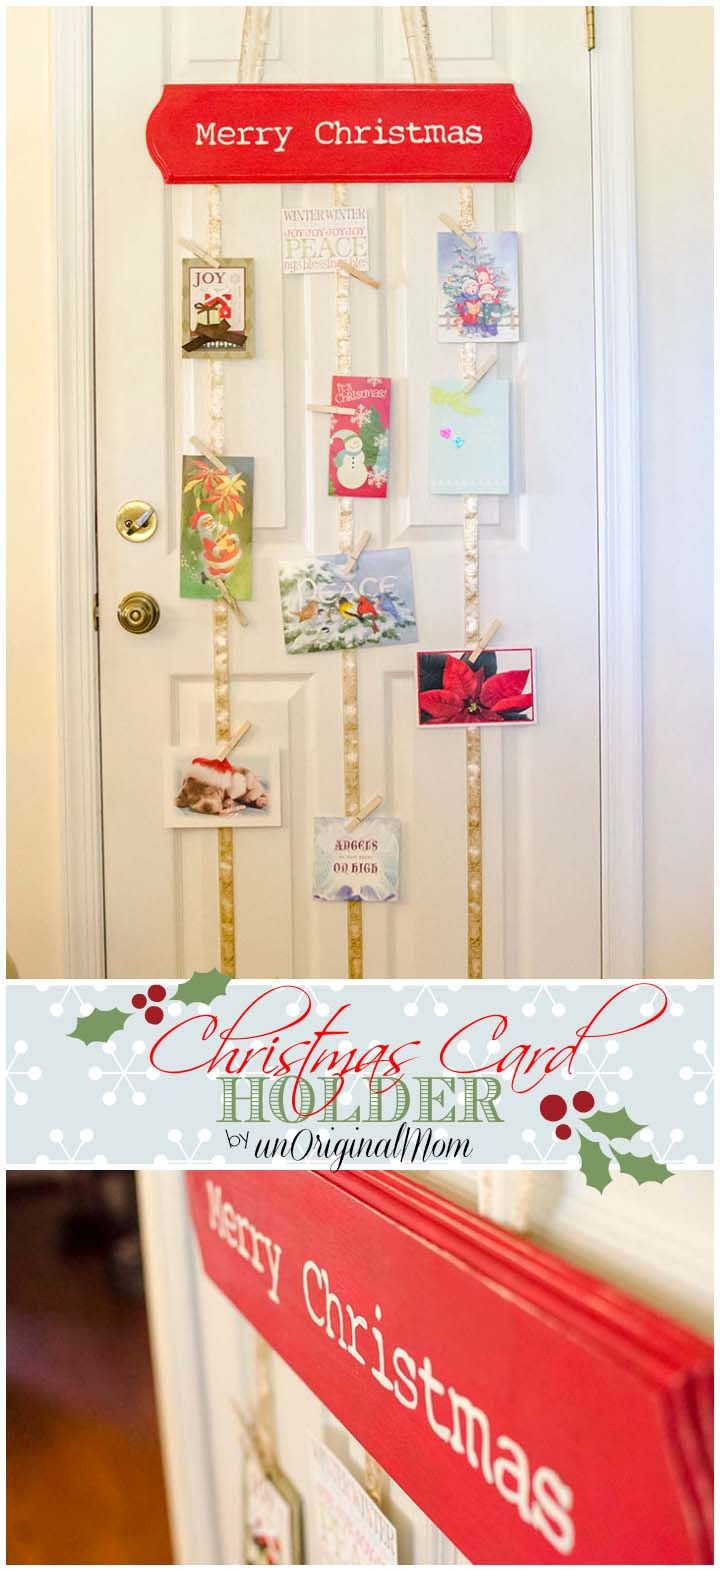 DIY Hanging Christmas Card Holder - great way to display lots of Christmas cards without taking up flat space! #holidayideaexchange